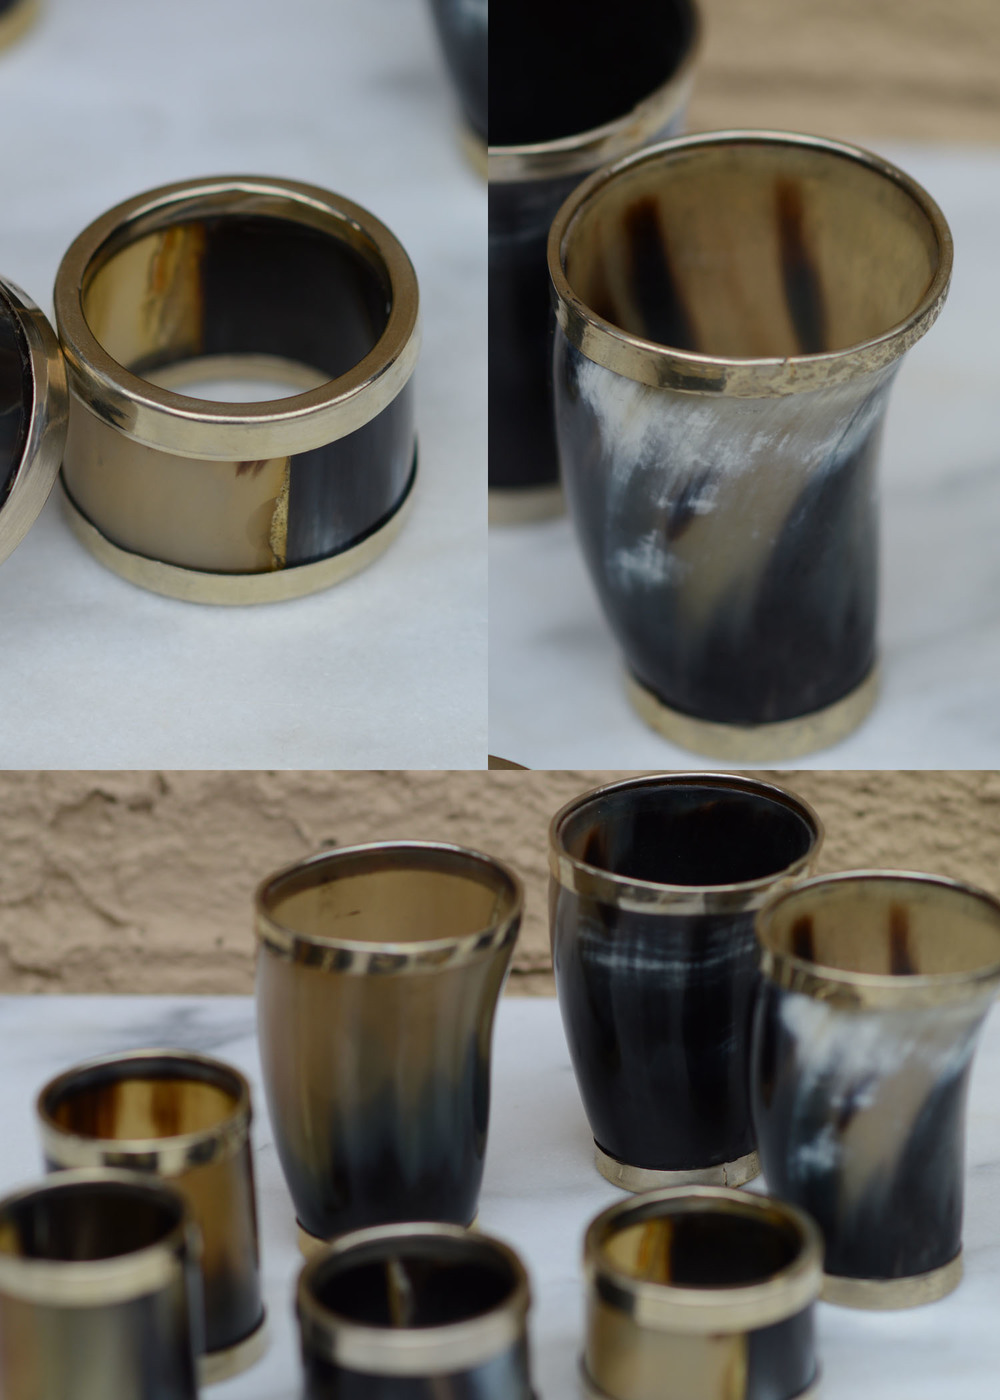 These are cups, shot glasses, and napkin rings made out of horn.